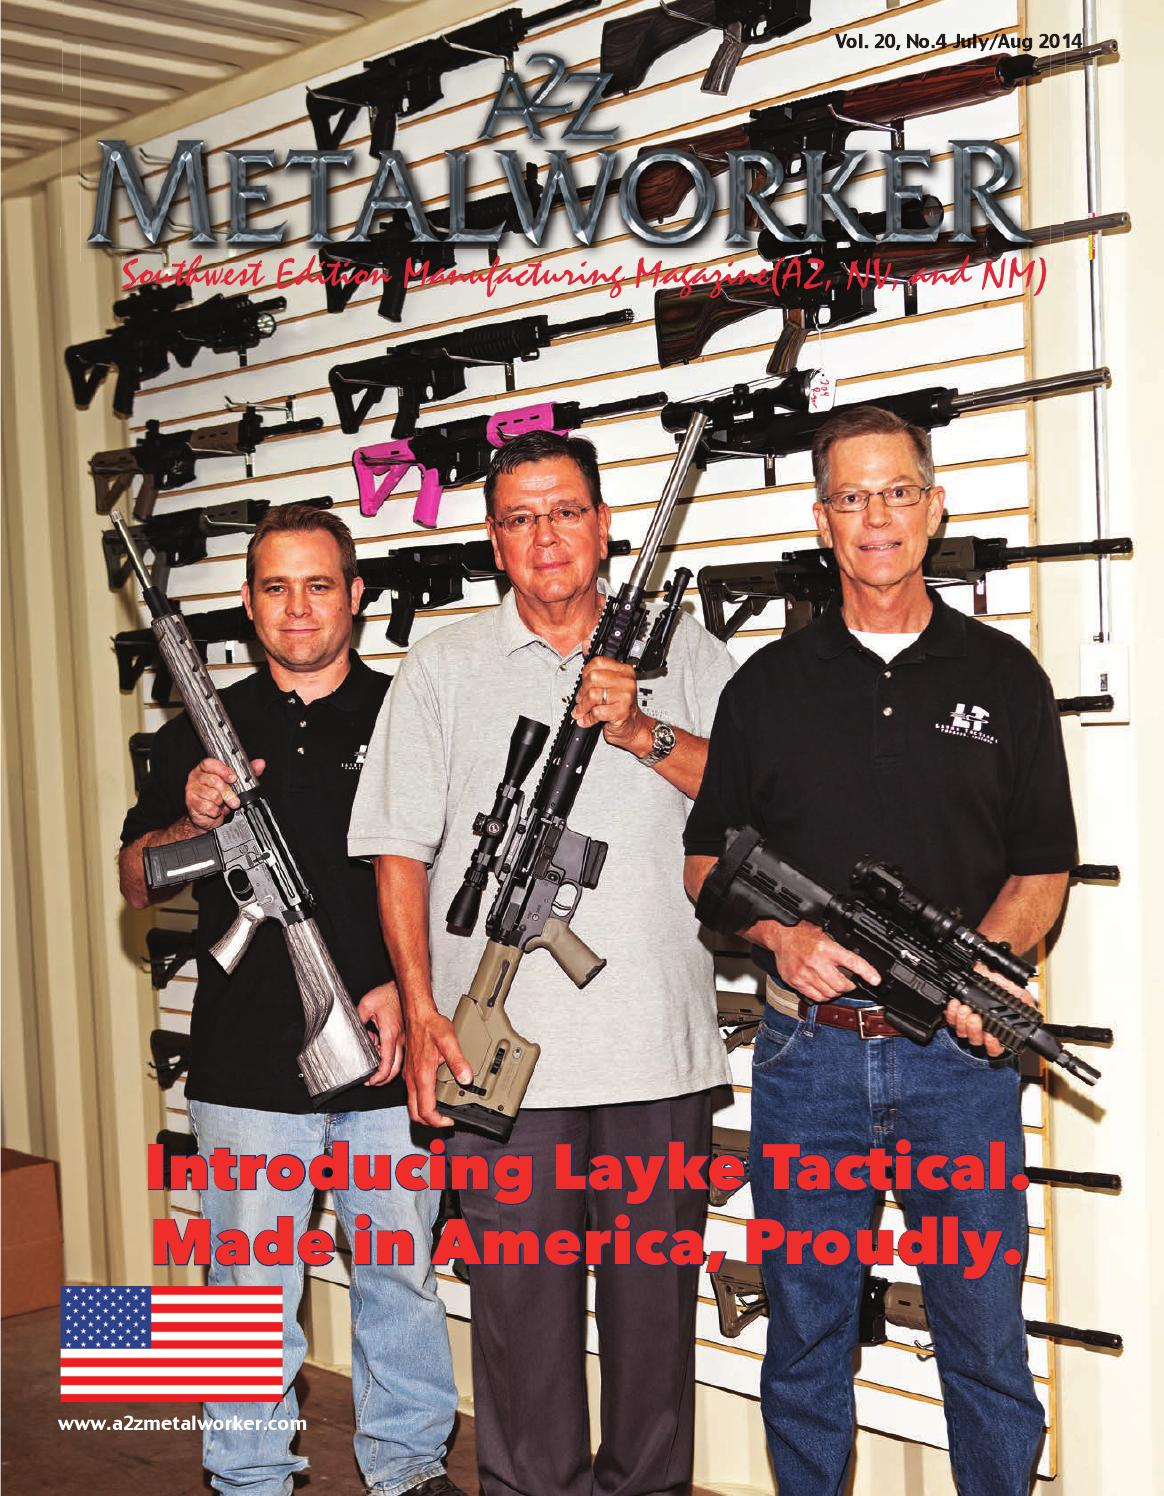 Sw Edition June July 2014 By A2z Metalworker Magazines Issuu Printed Circuit Board Stock Image T356 0562 Science Photo Library